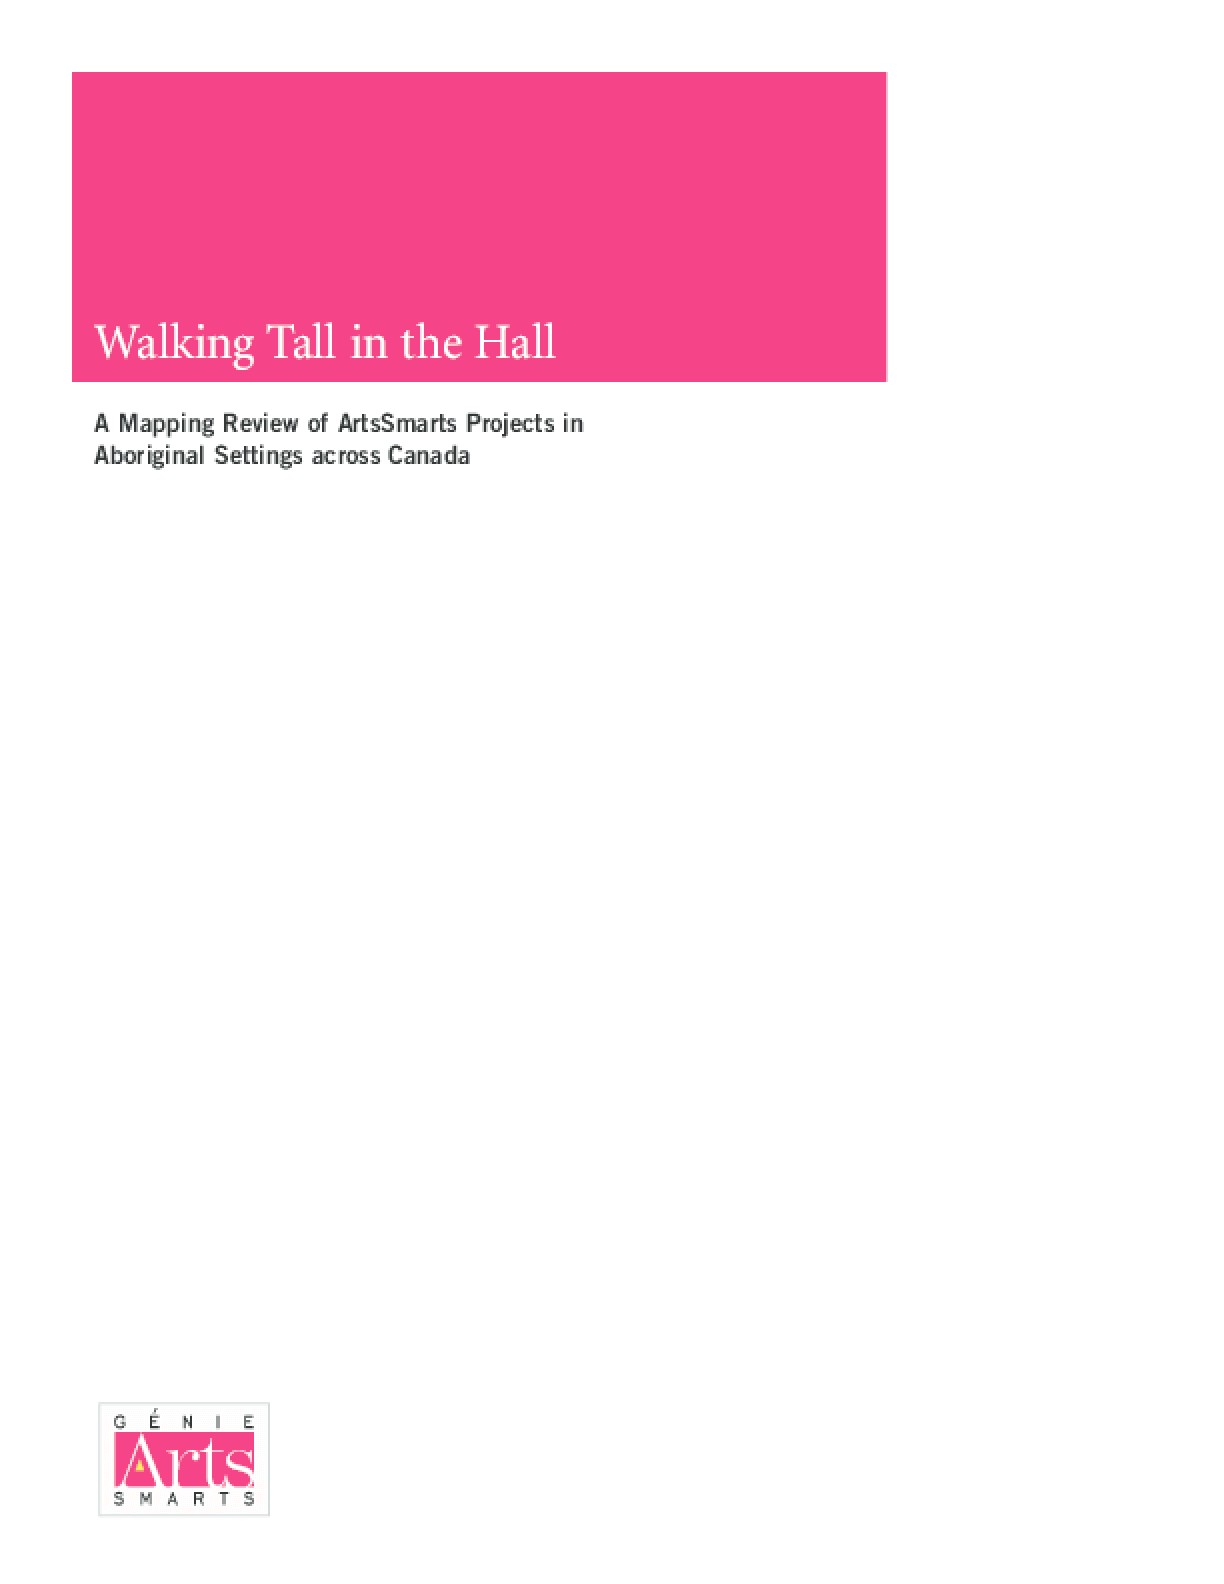 Walking Tall in the Hall: A Mapping Review of ArtsSmarts Projects in Aboriginal Settings Across Canada